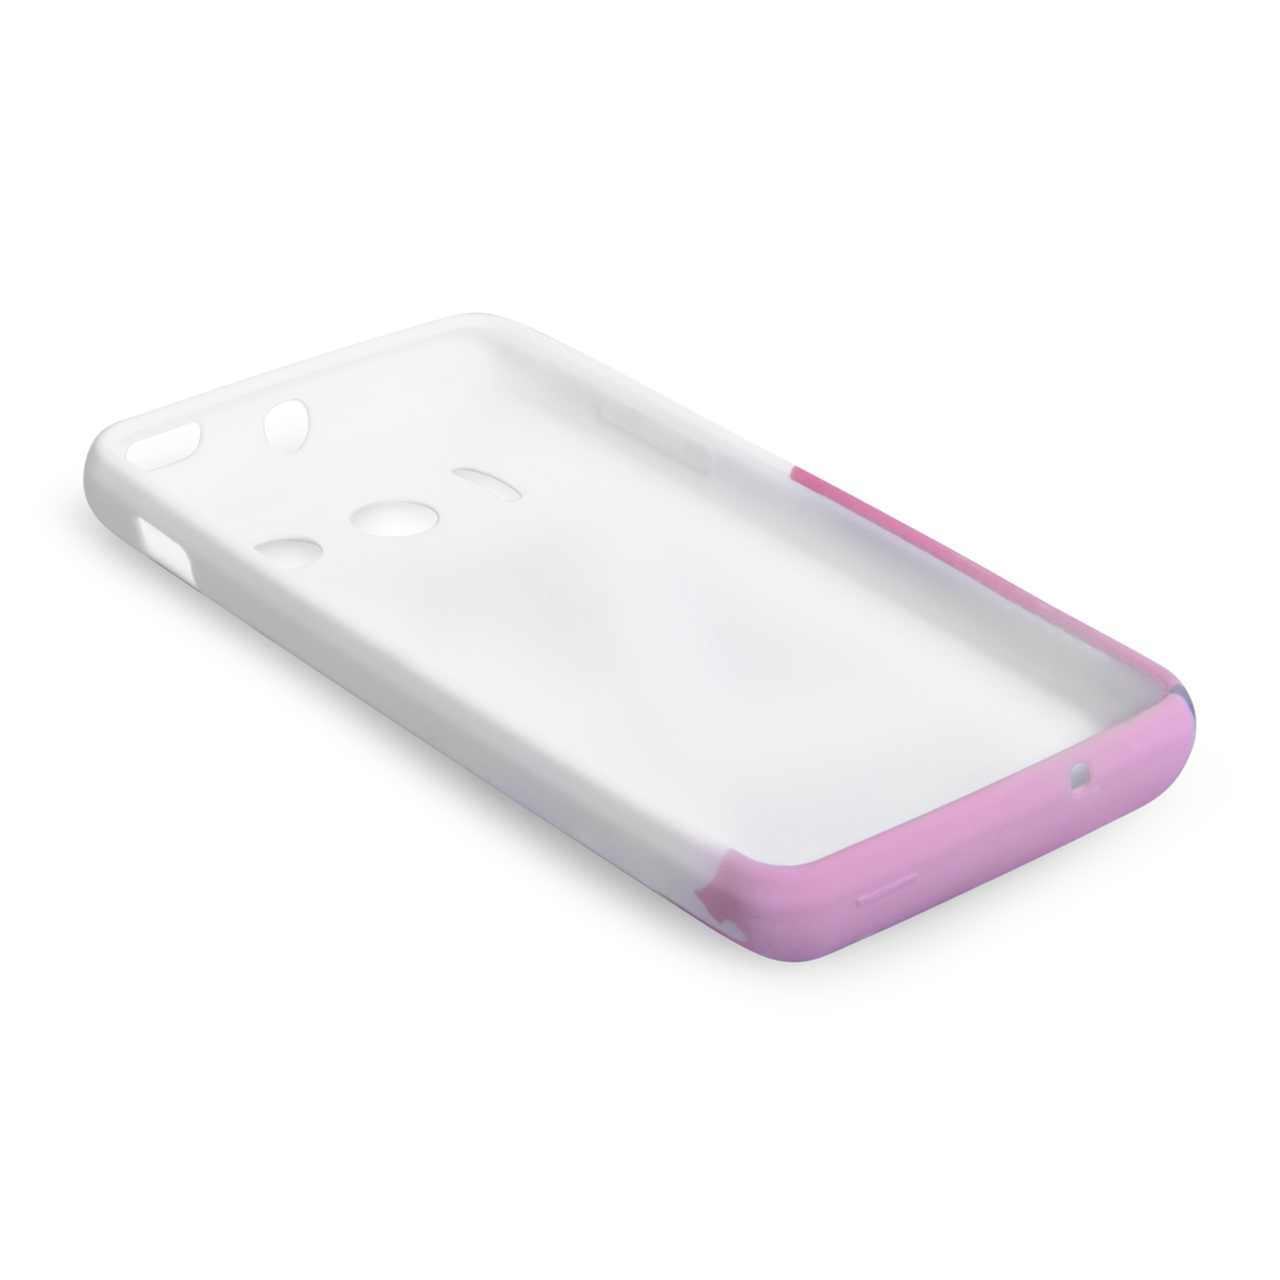 YouSave Accessories Huawei Ascend Y300 Floral Bee Silicone Gel Case